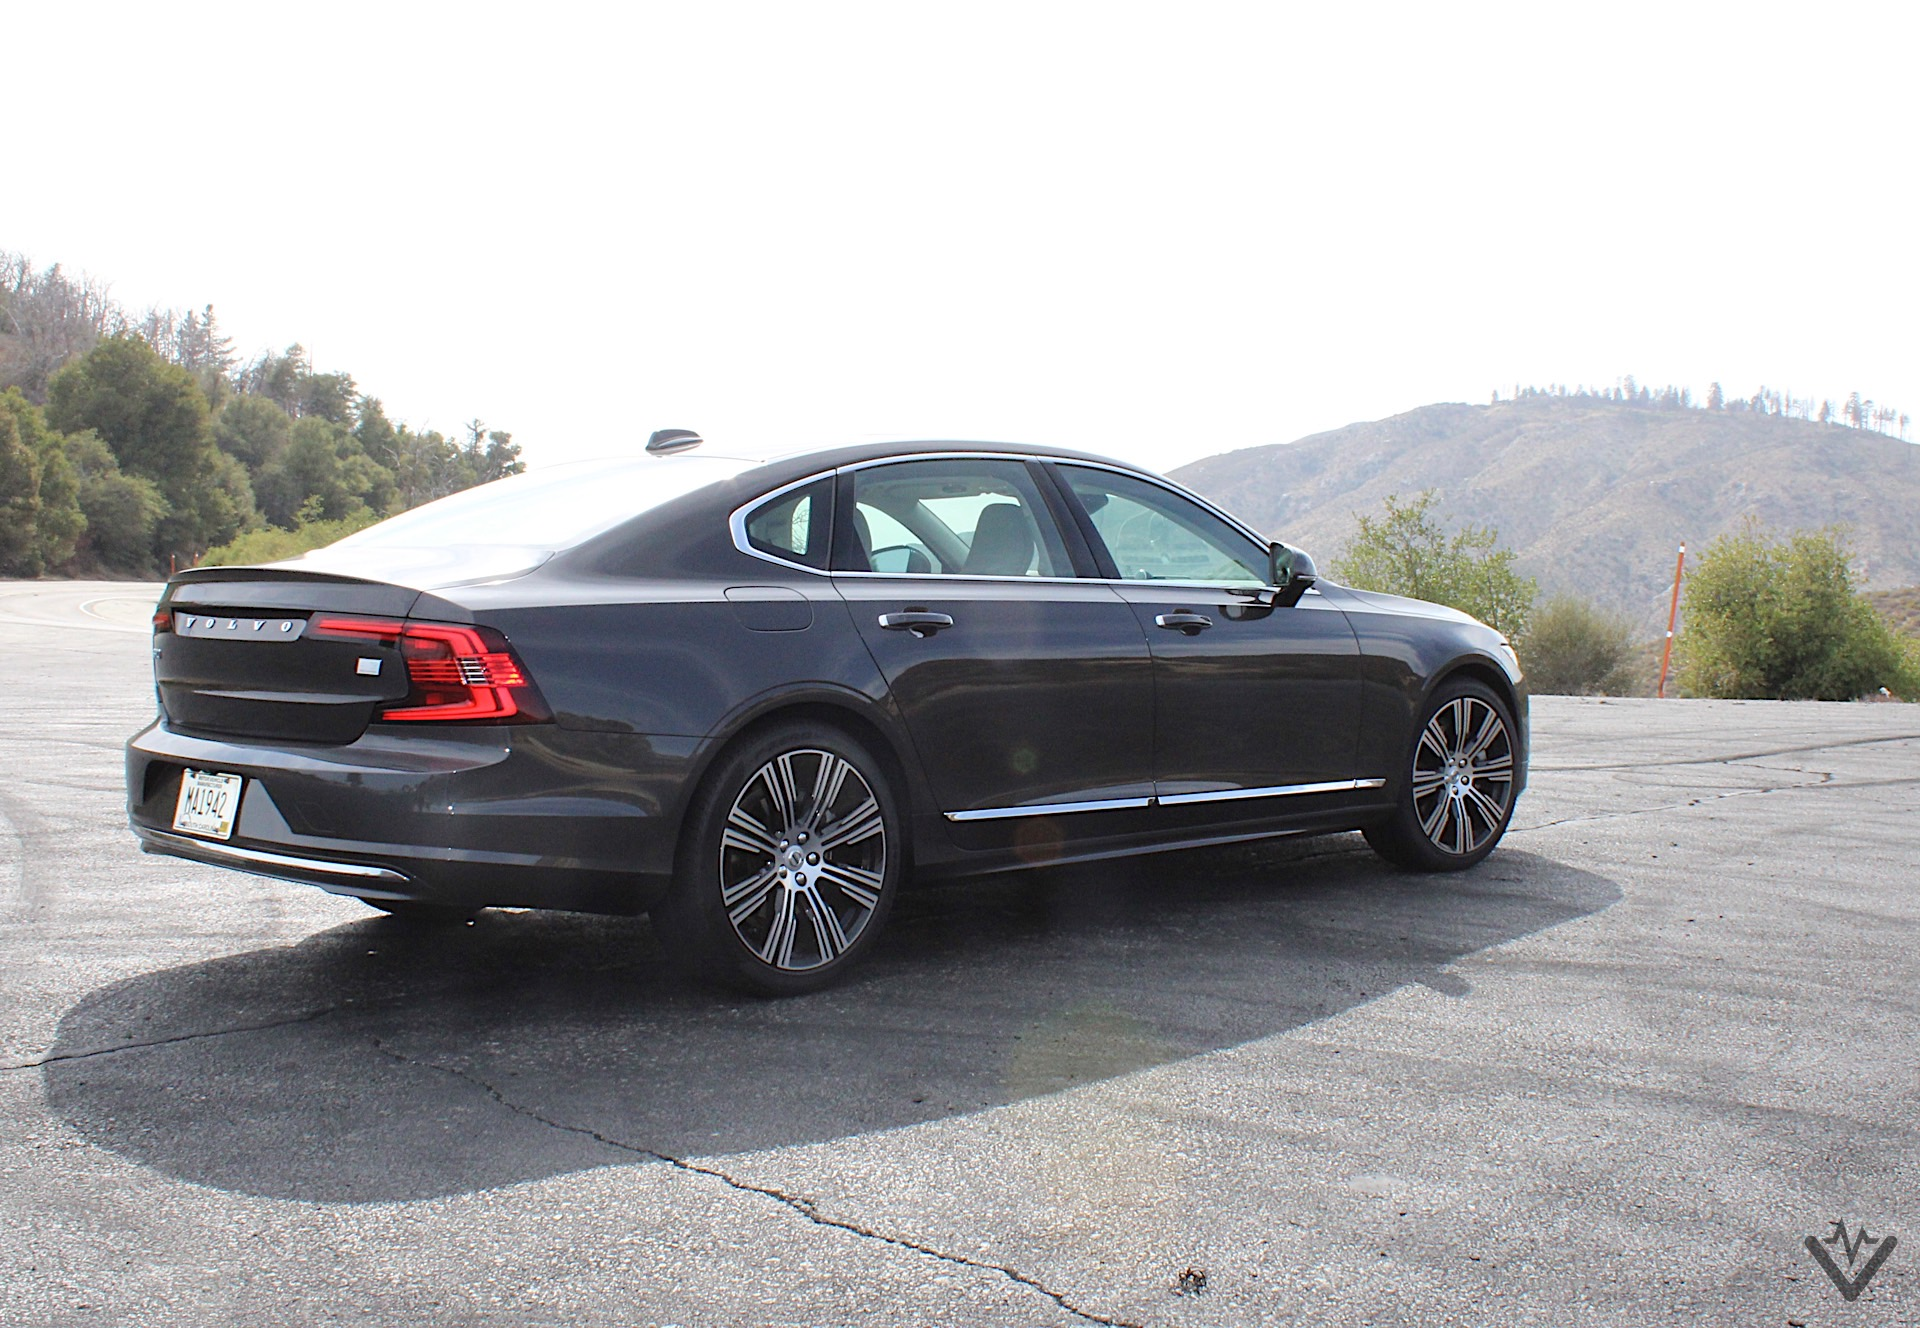 2021 Volvo S90 T8 Recharge rear three quarters 05 1